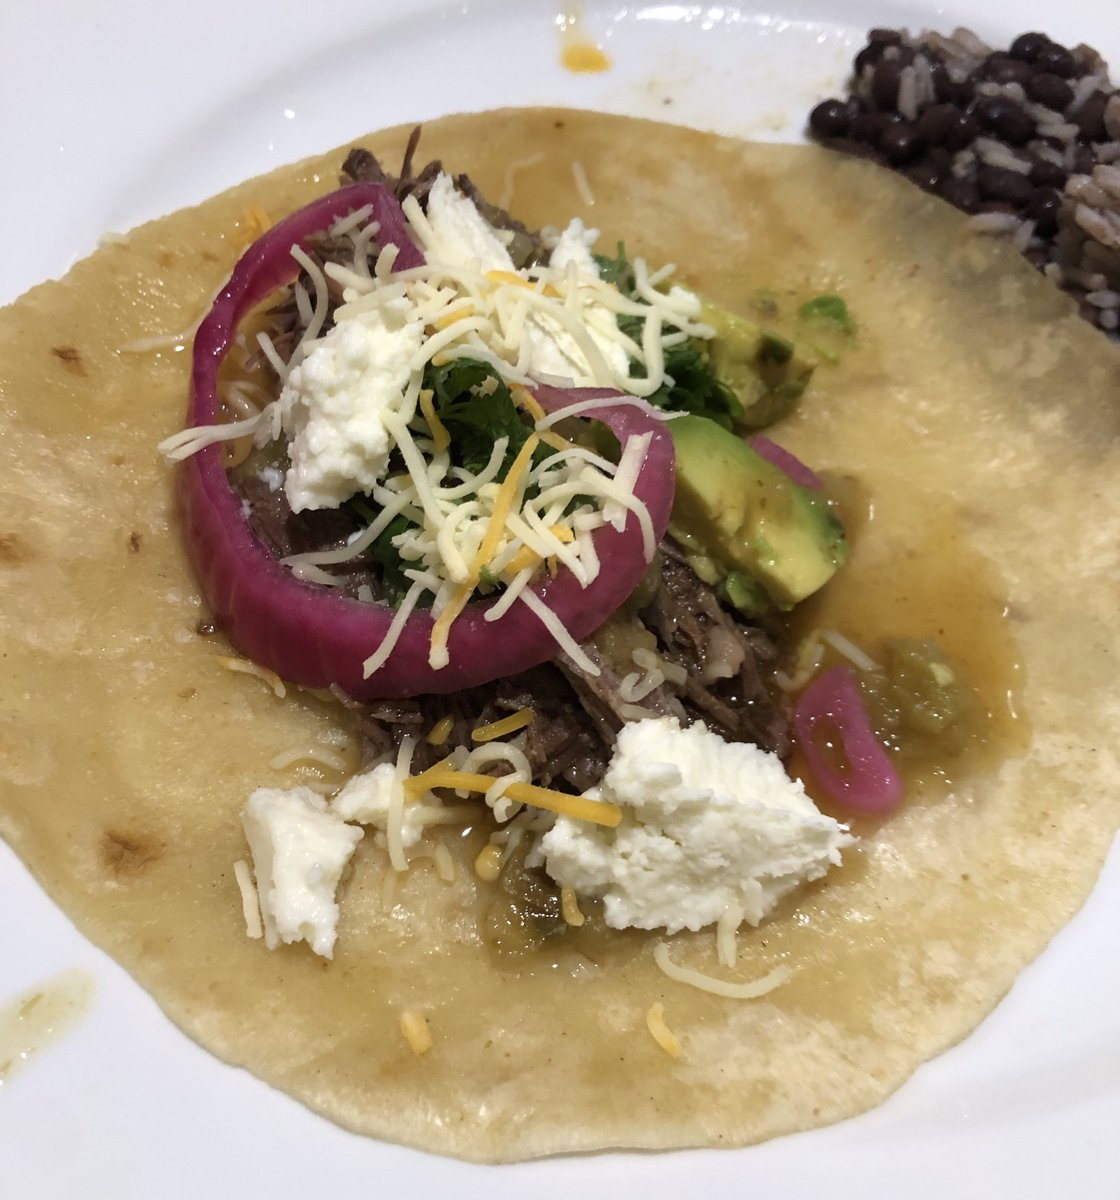 Now that's a #TacoTuesday https://t.co/2uAJauH39Q